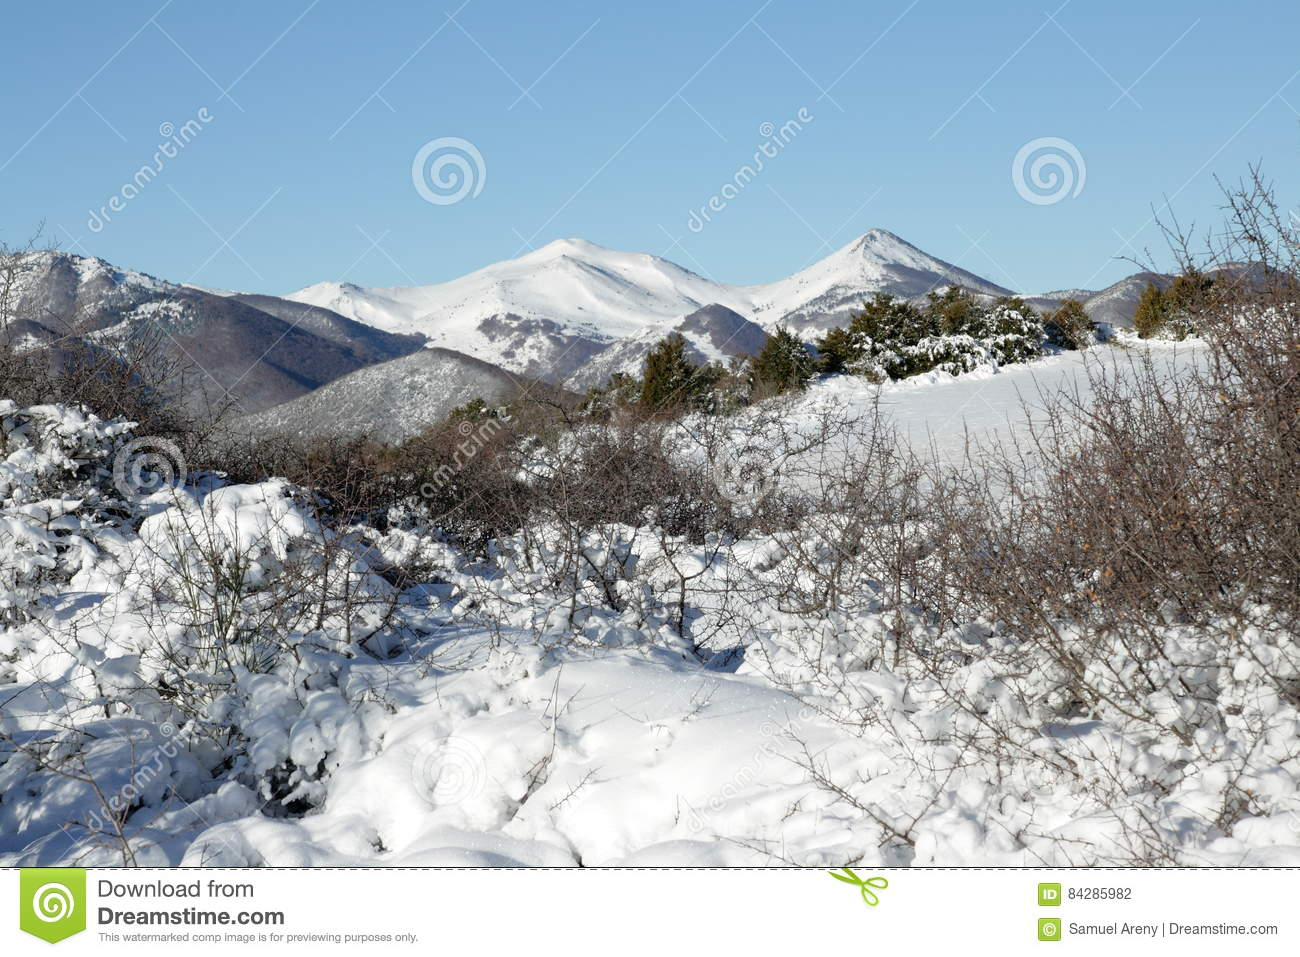 Snowy mountain in Donezan, Pyrenees